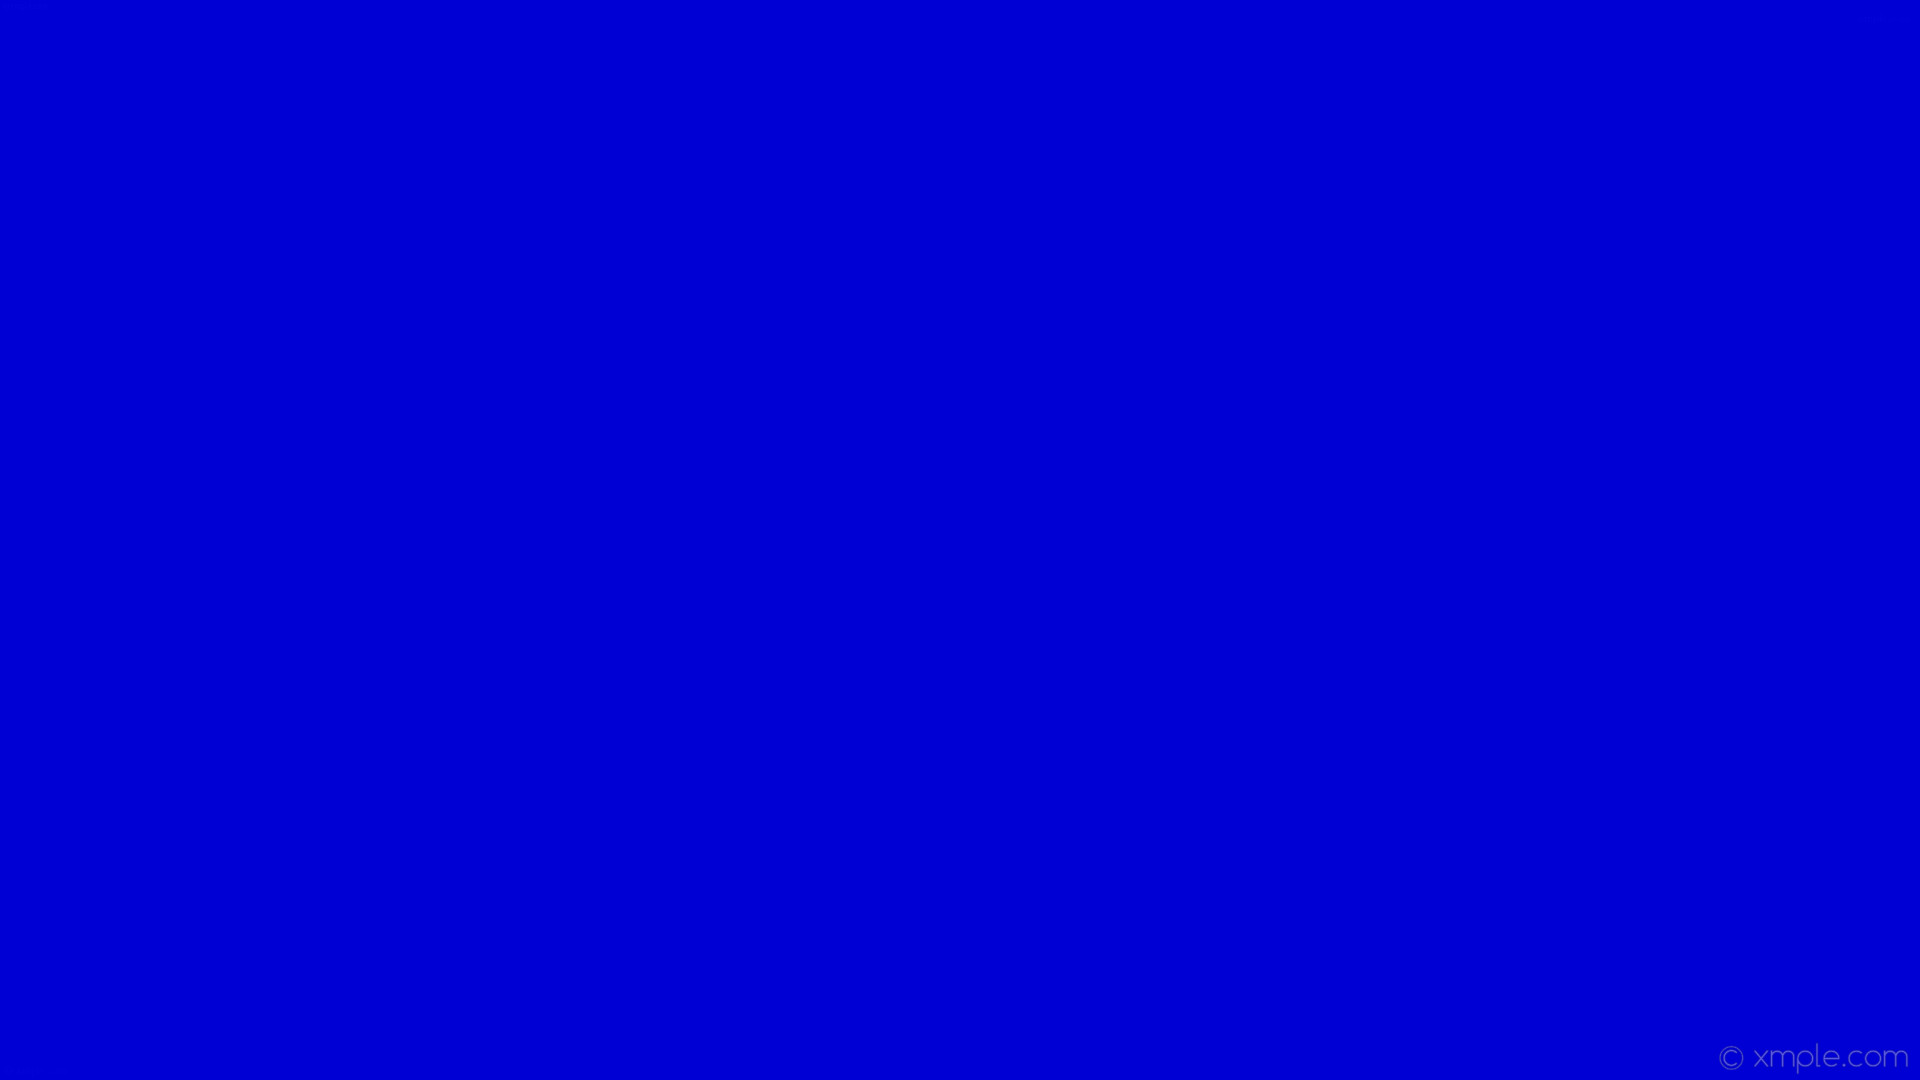 blue plain wallpaper (74+ images)